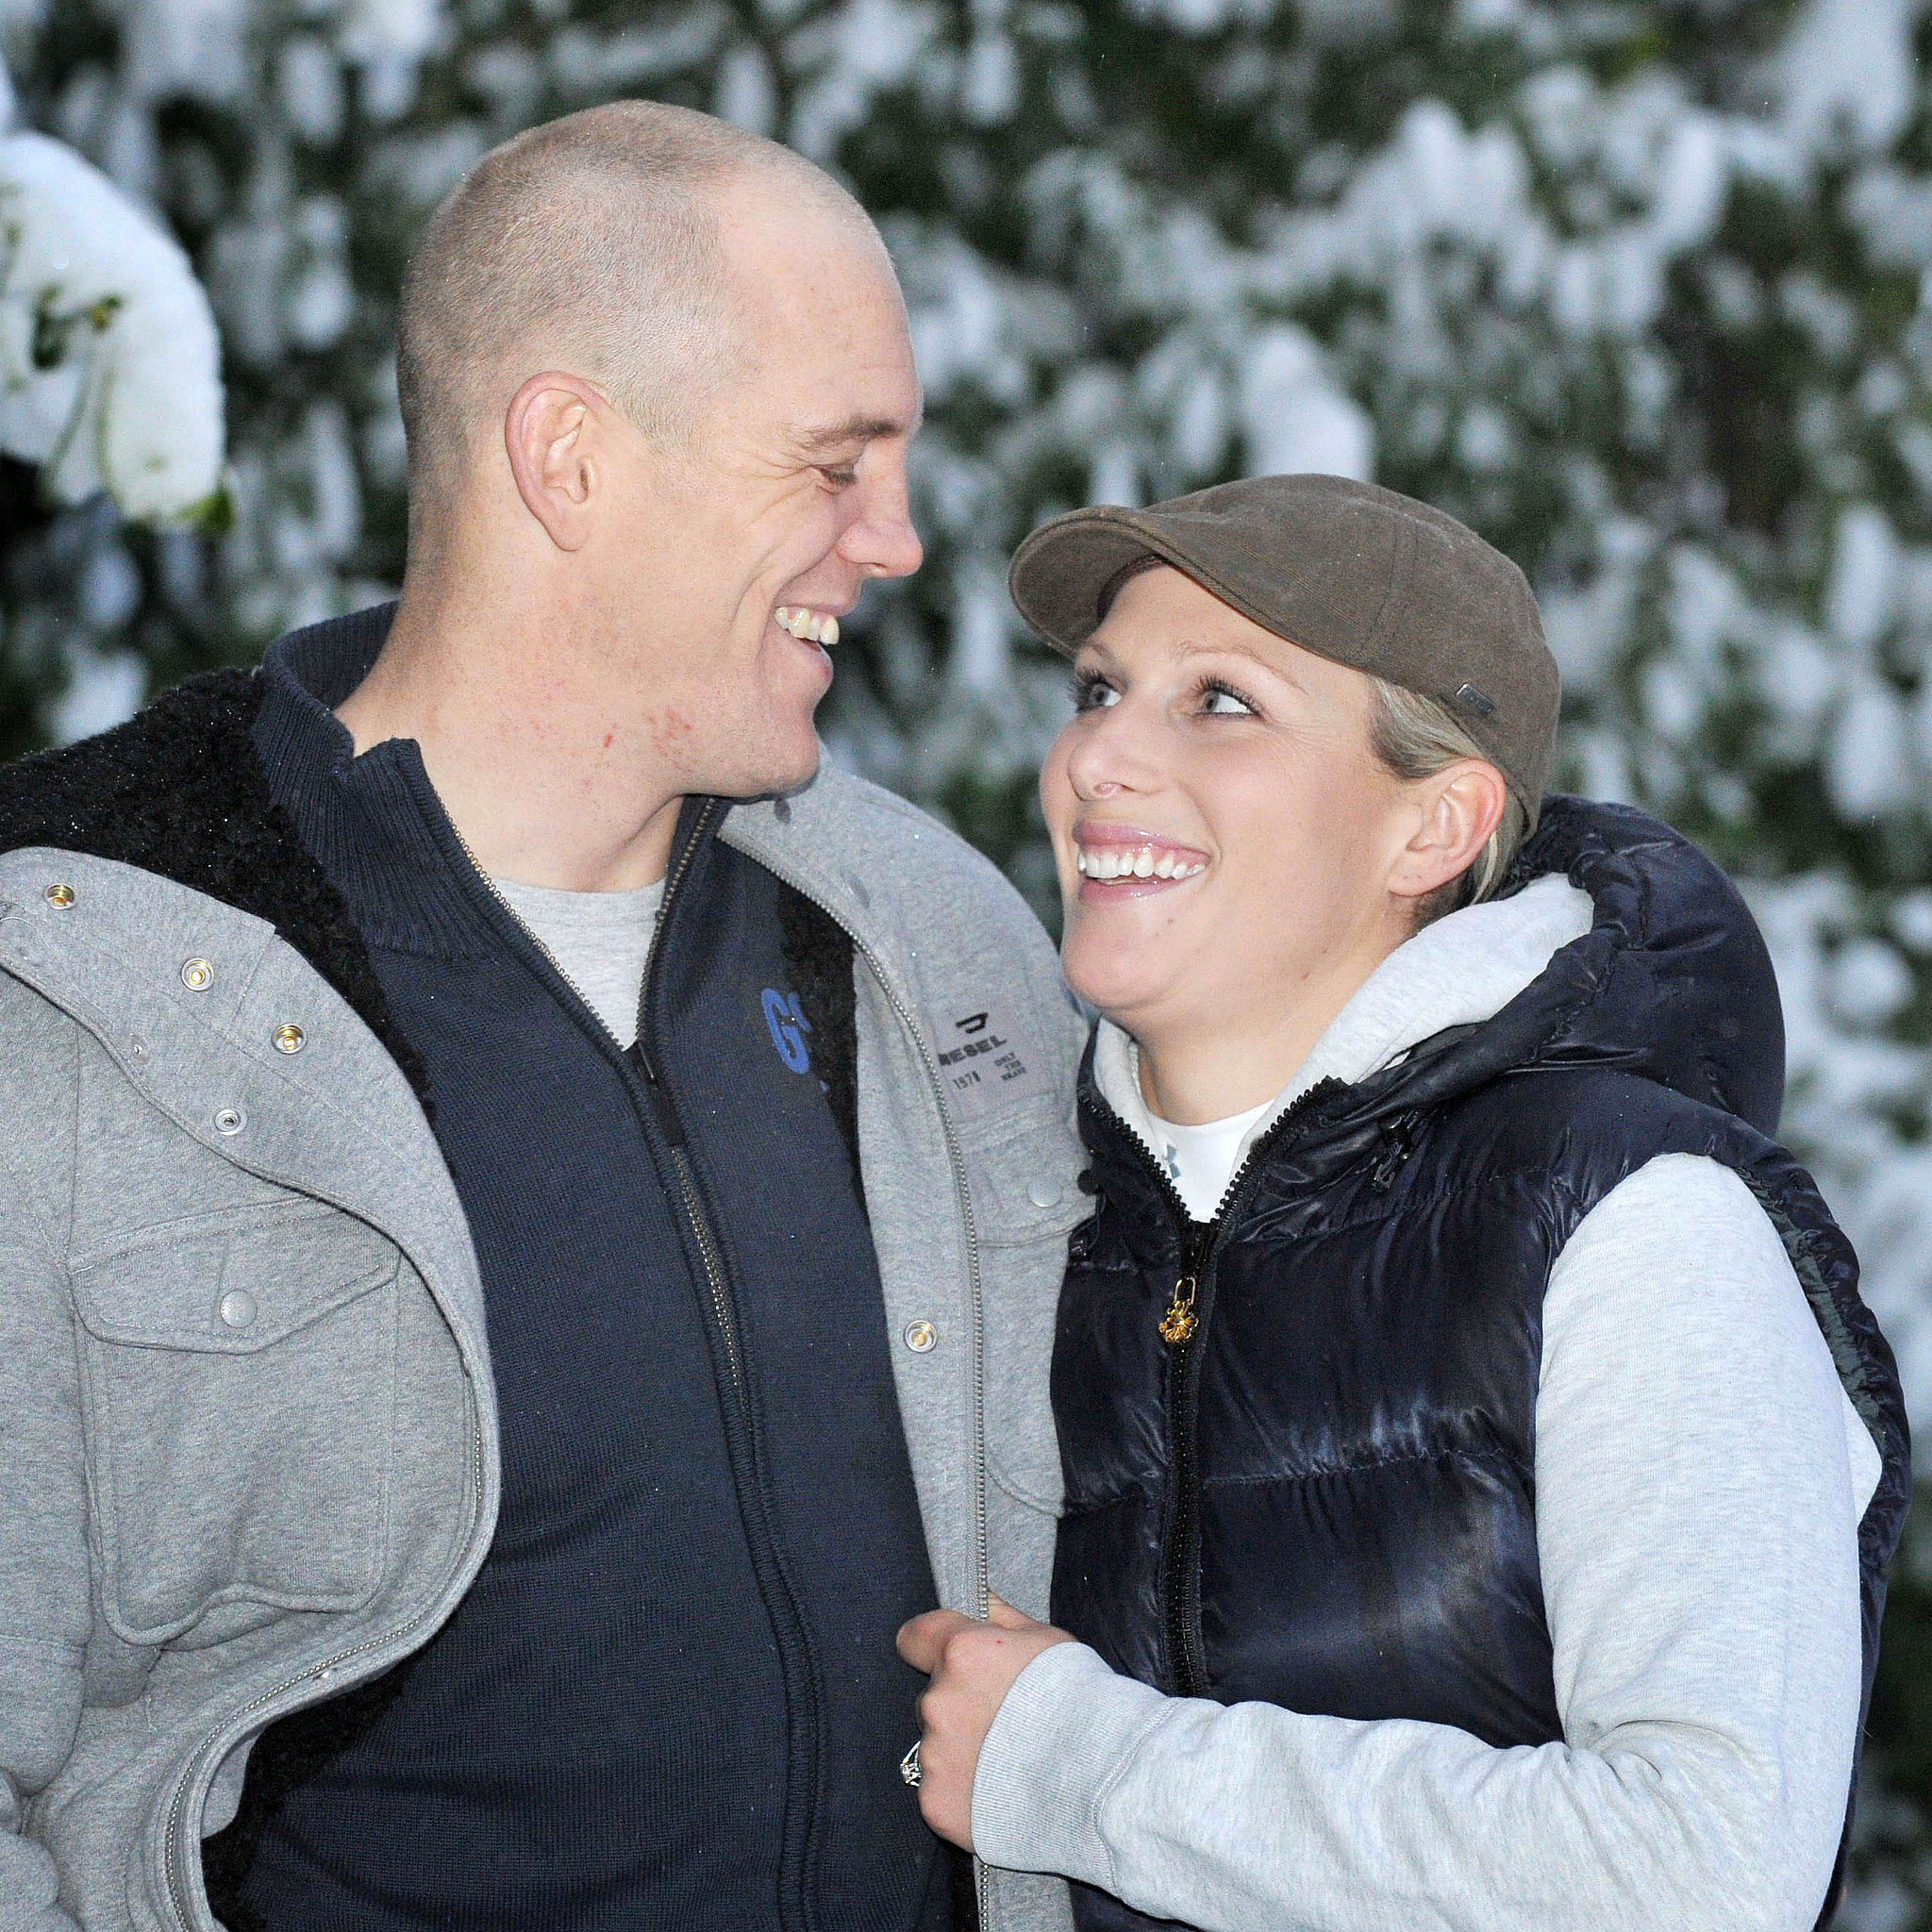 Zara and Mike announced their engagement with a casual photocall in 2011.